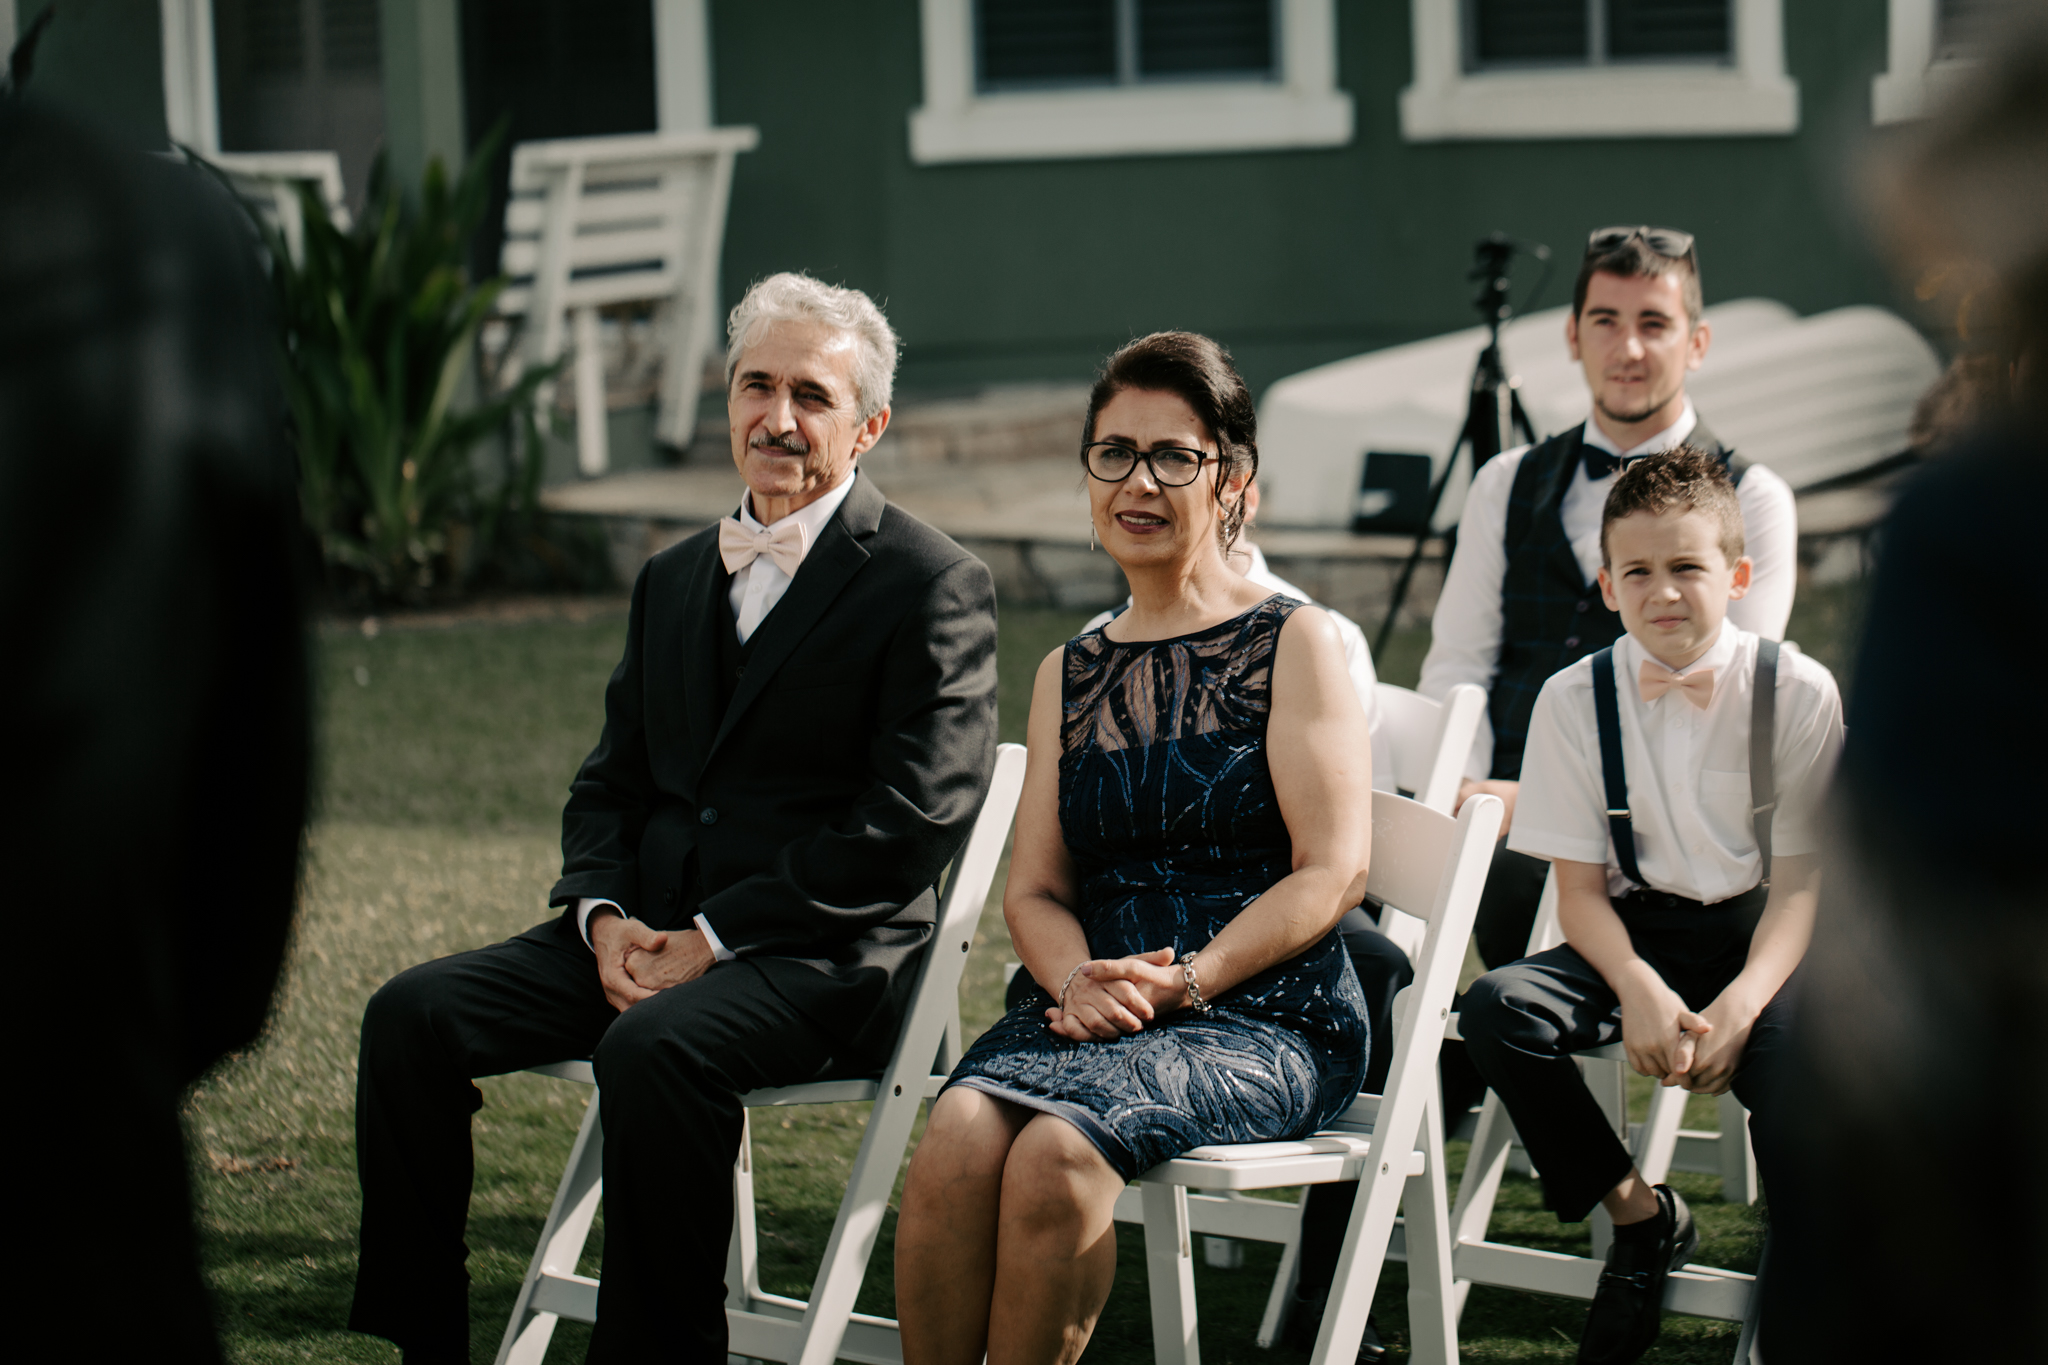 Parents of the bride watching the ceremony